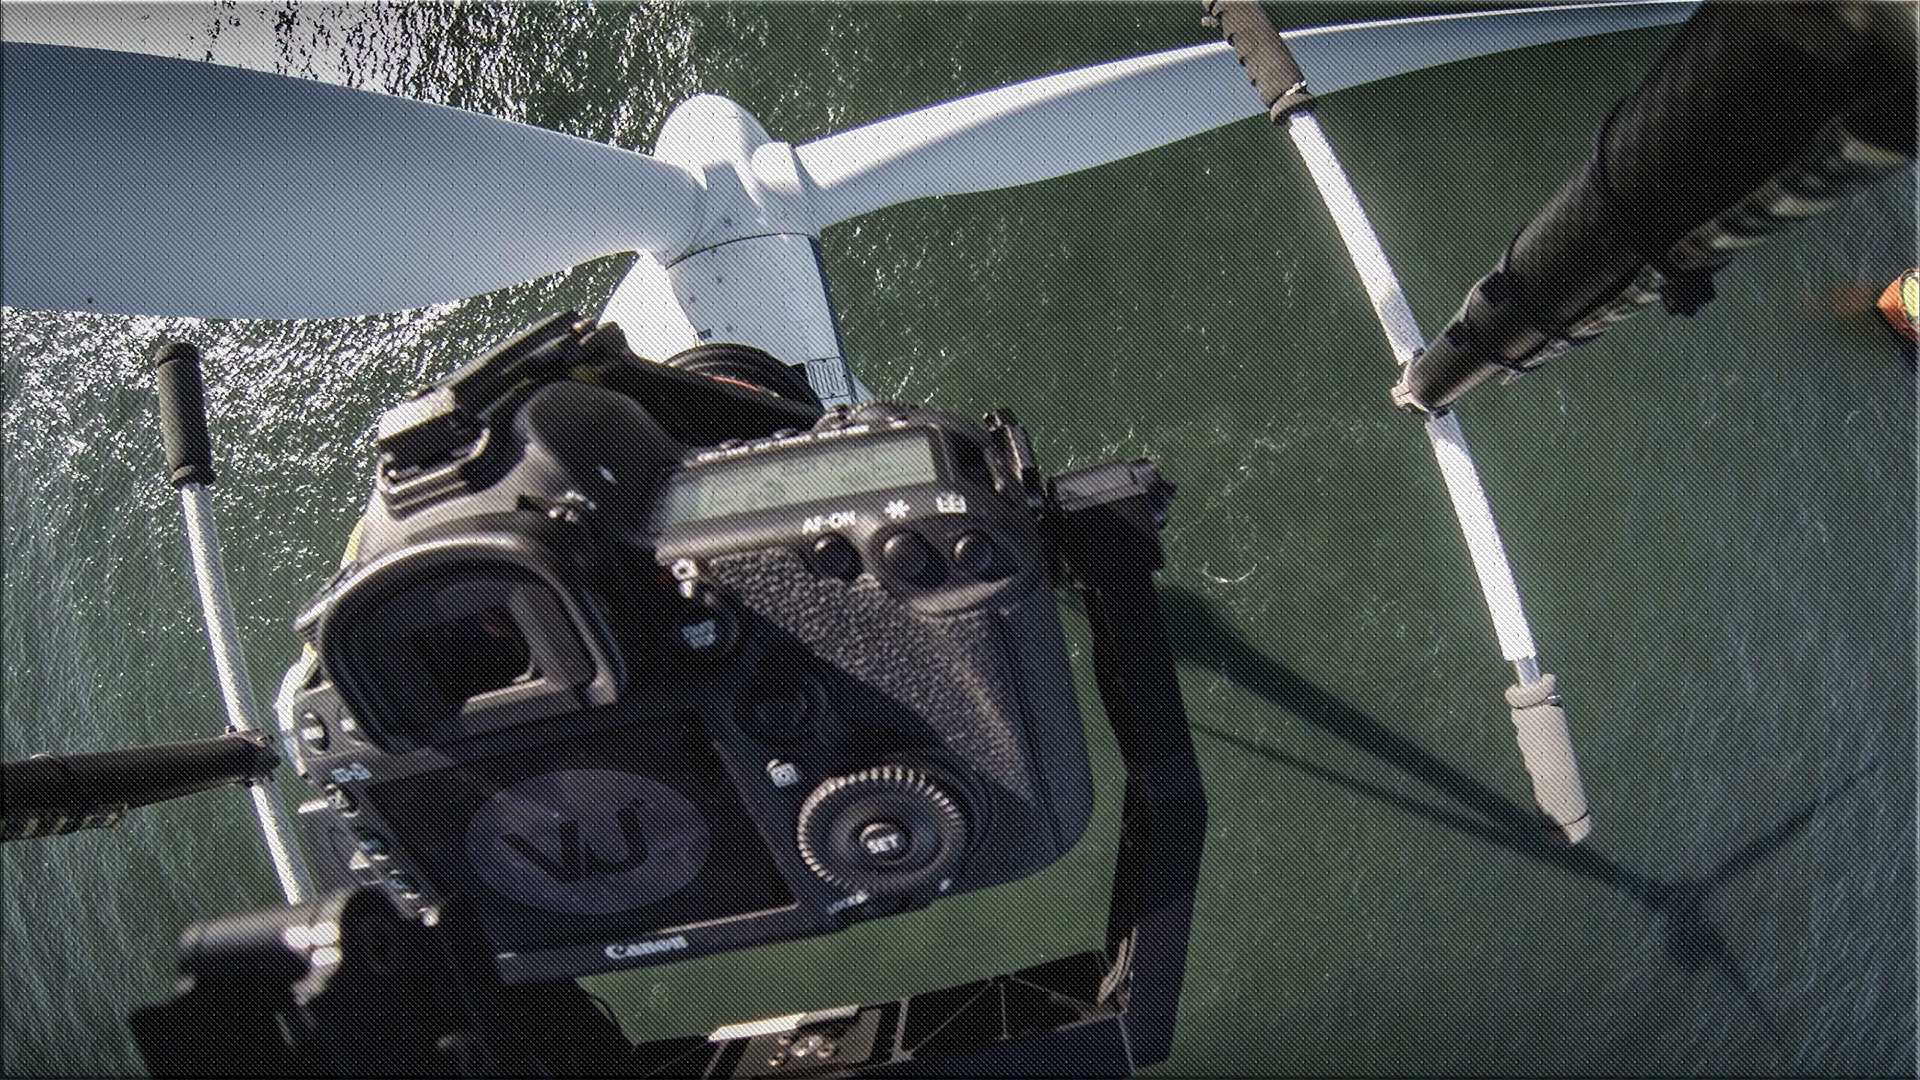 New offshore world record: UAV blades inspection